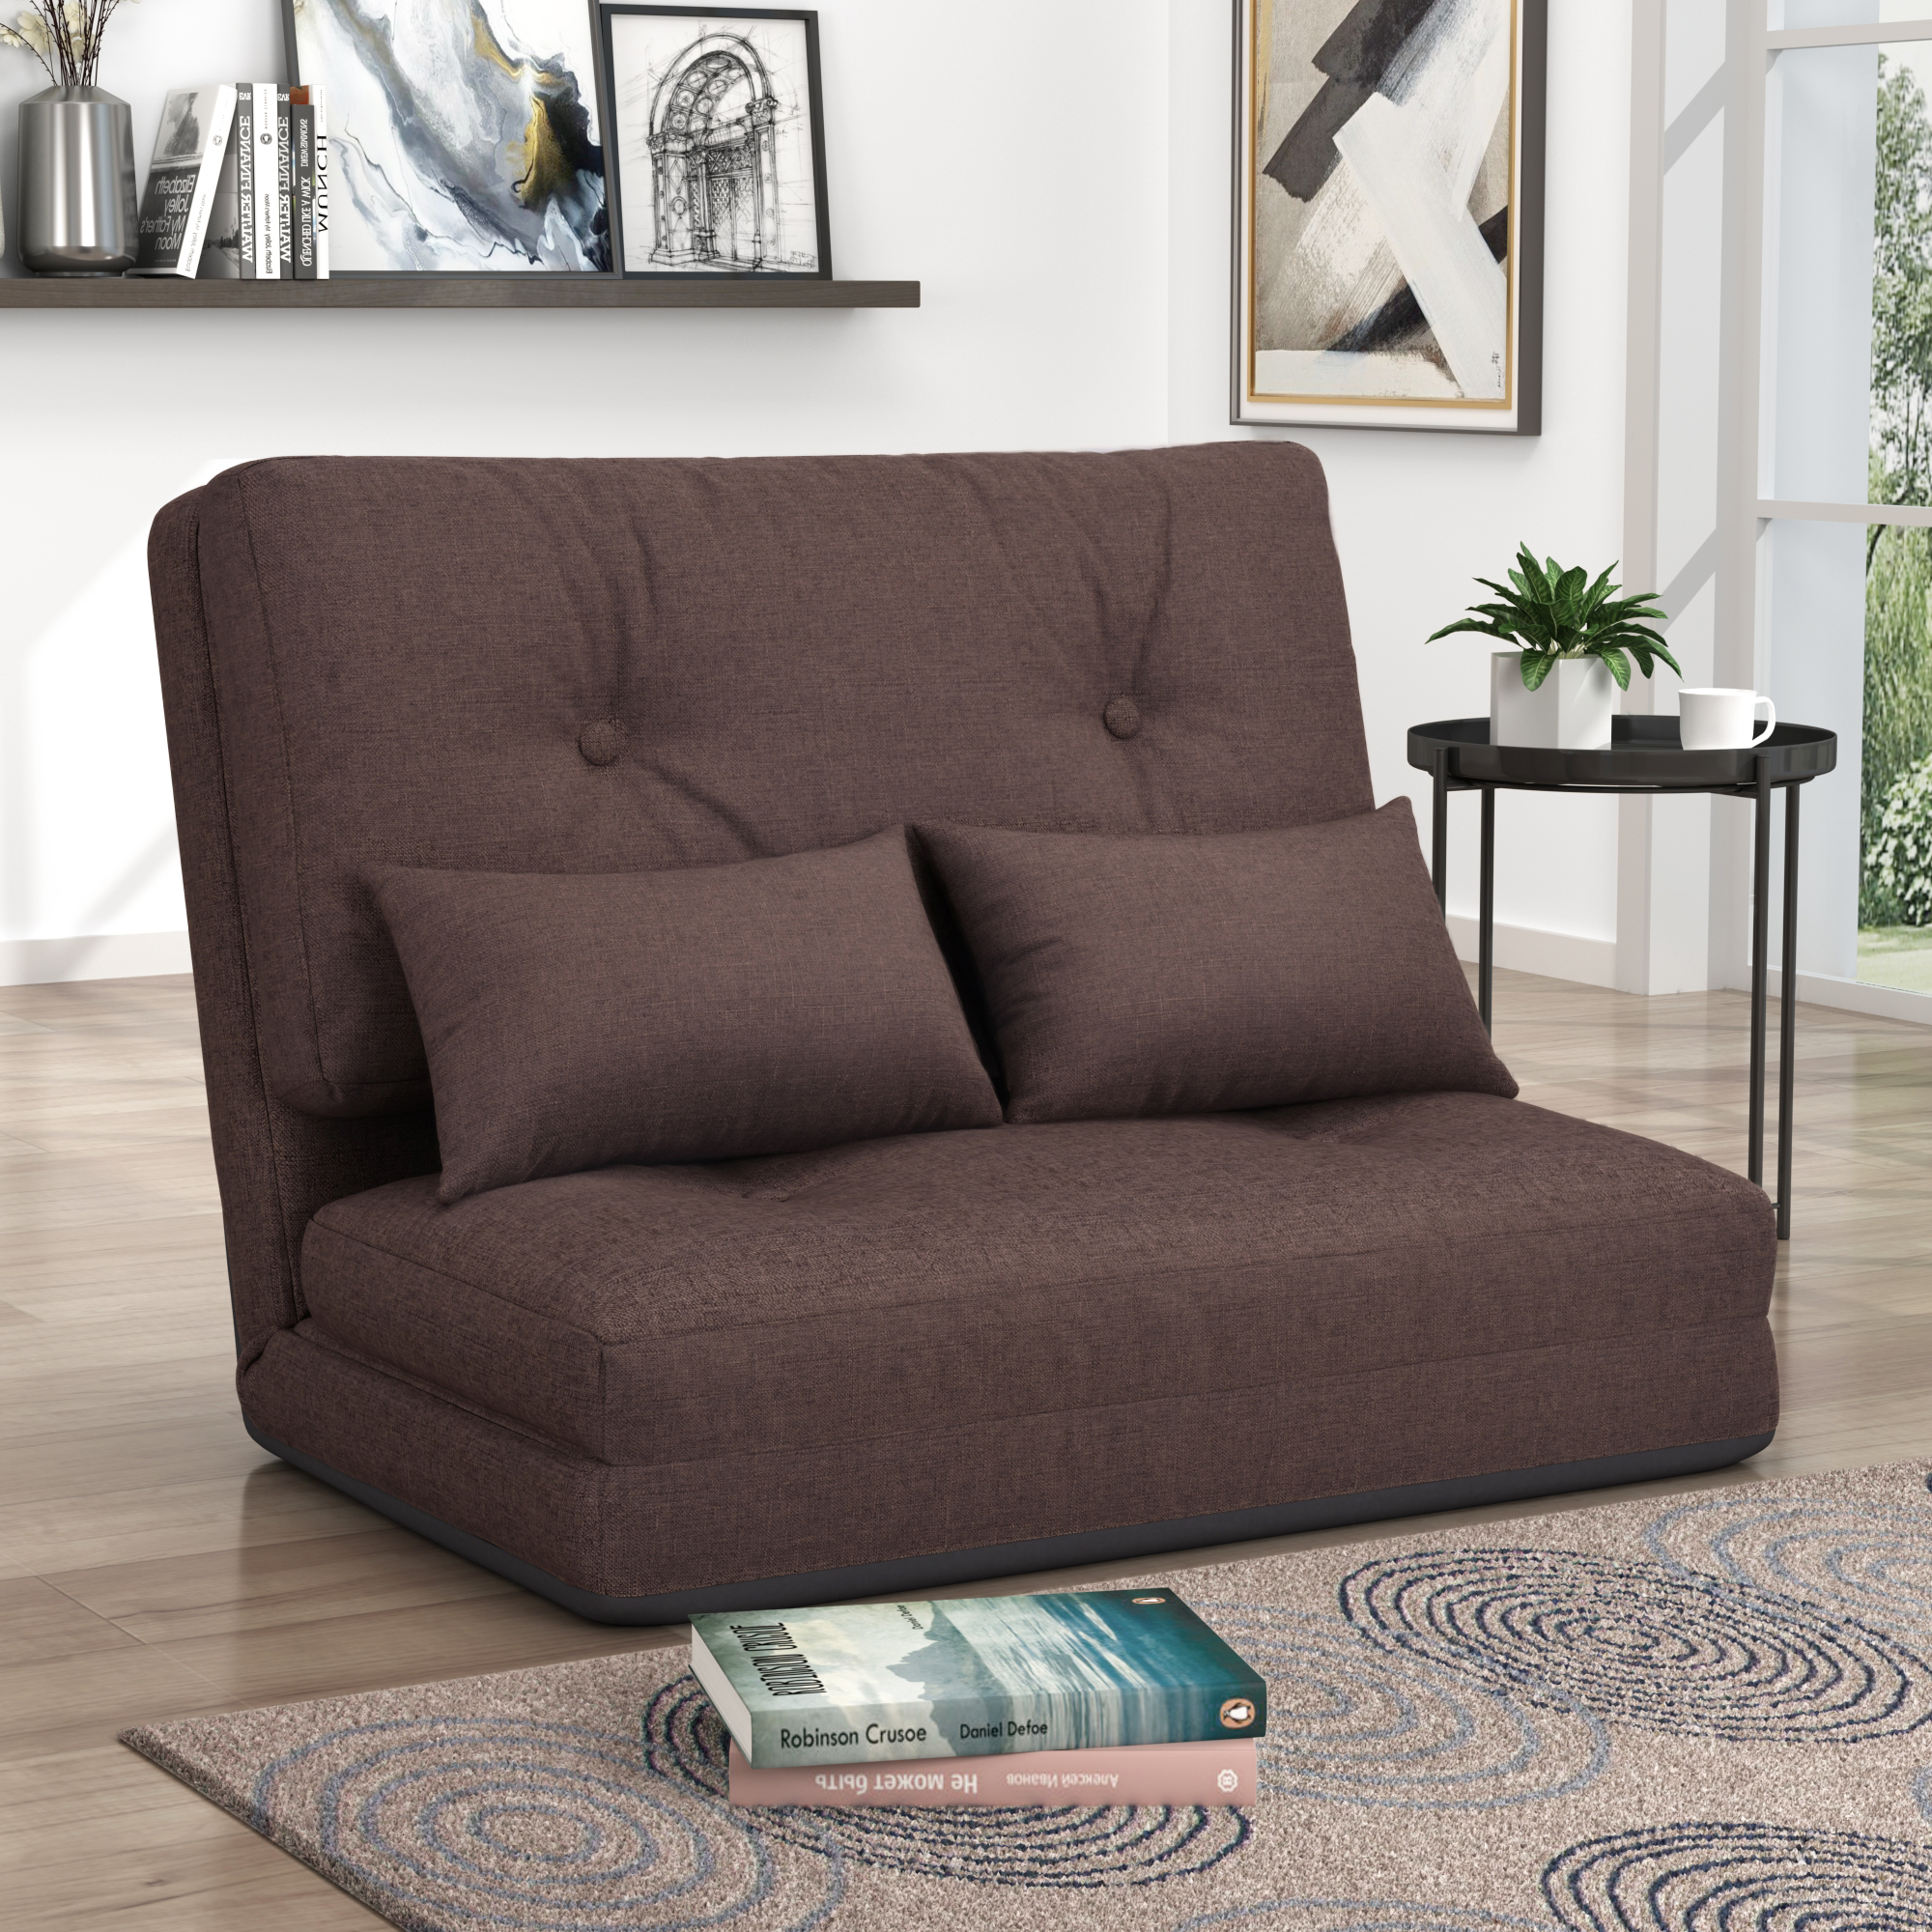 lounge sofa chair floor couch floor gaming sofa chair folding chaise lounge adjustable floor sofa sleeper sofa bed lazy sofa couch bedroom